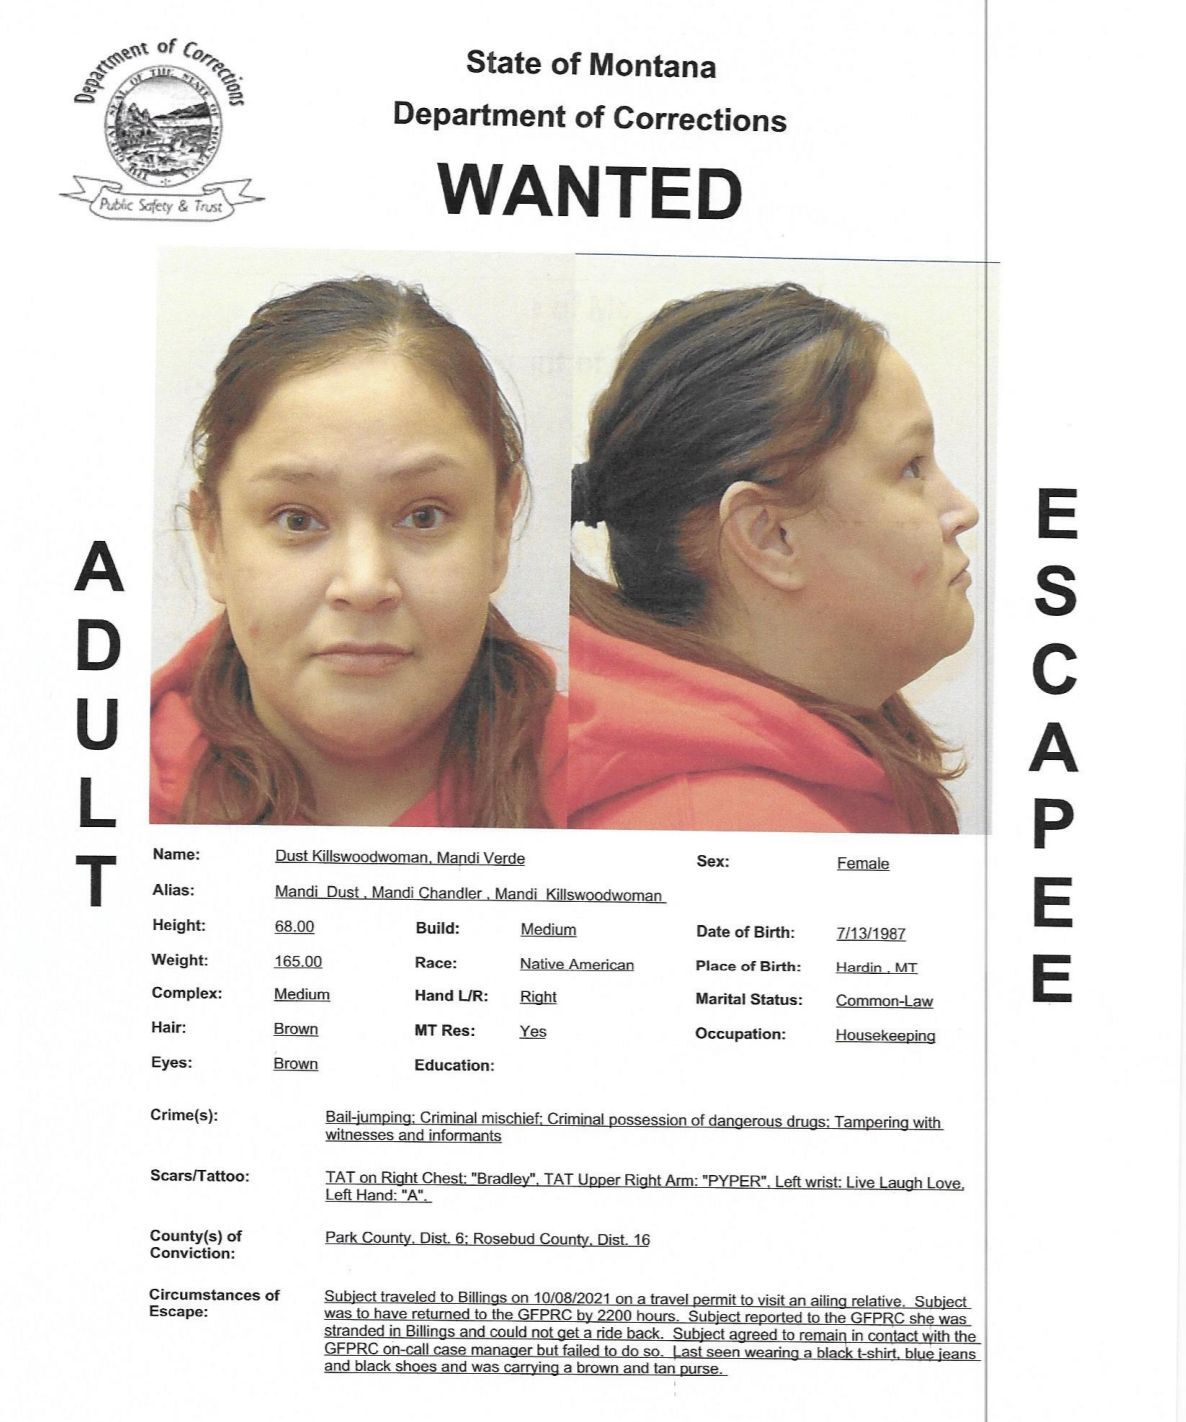 Mandi Verde Dust Killswoodwoman has been reported as as an escapee/walkaway from the Great Falls Pre-Release Center.